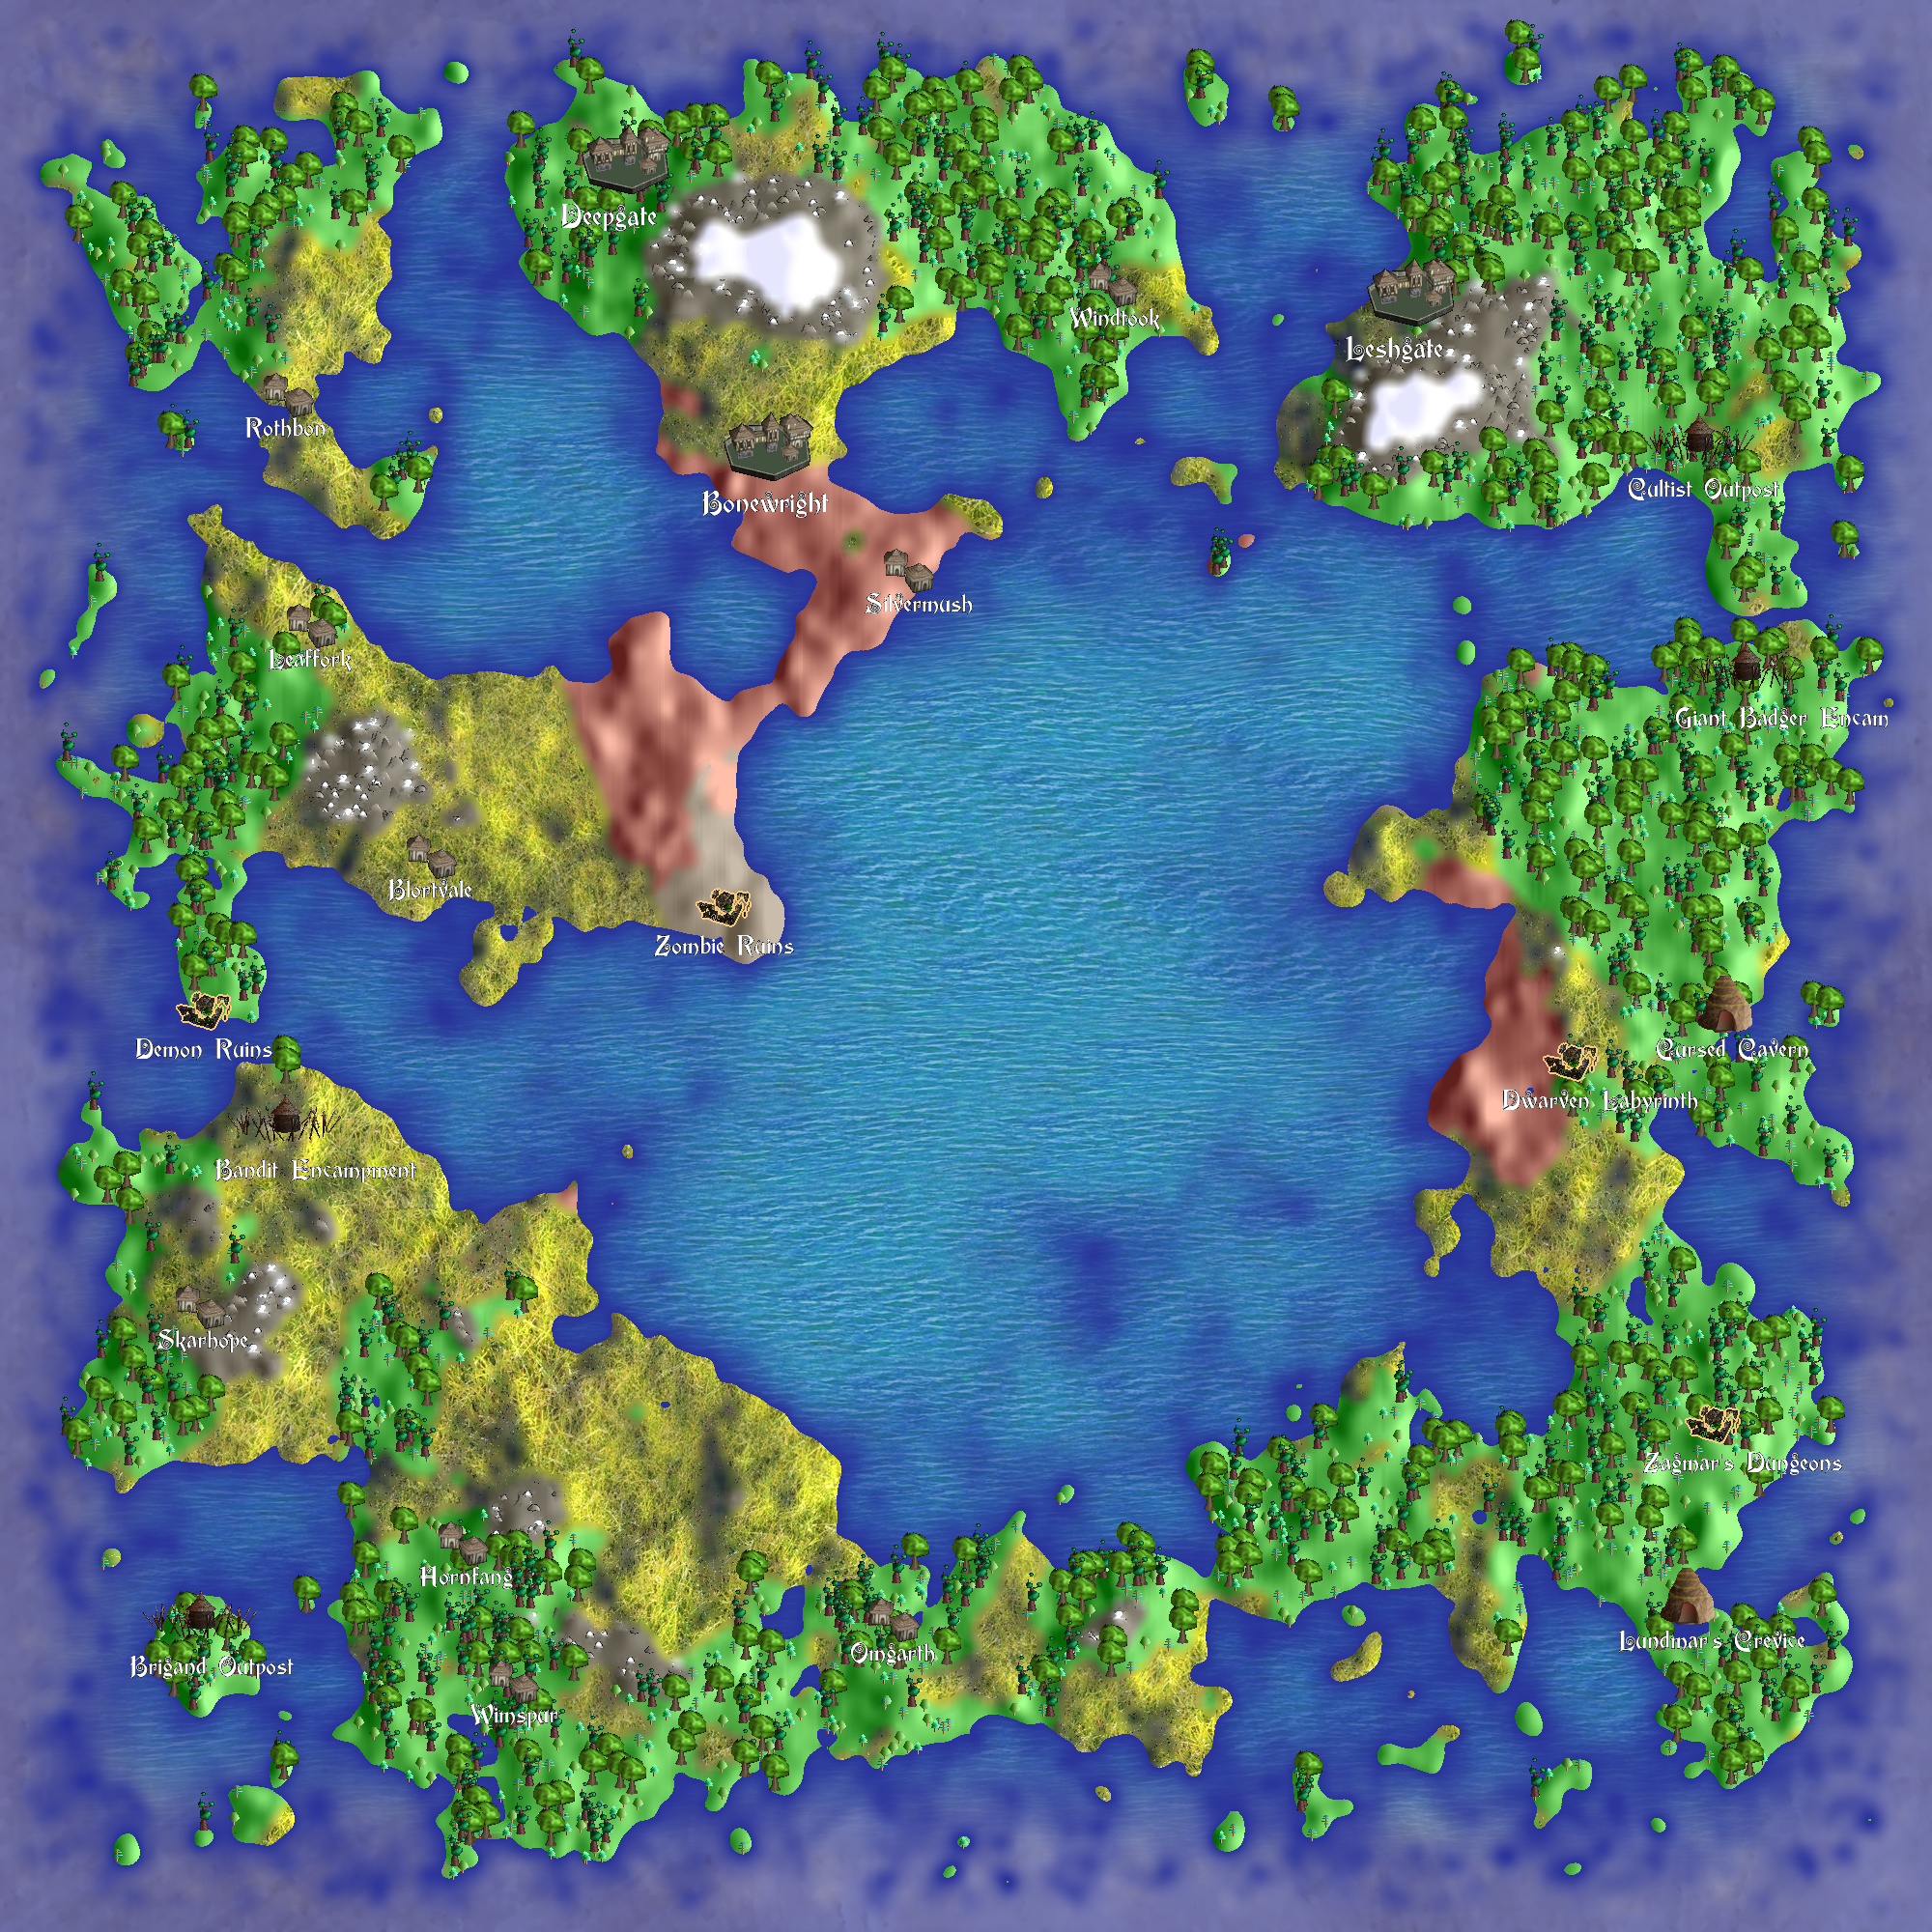 beaglemage fantasy map generator lets you create fantasy maps in Python for the geekiest method of map creation